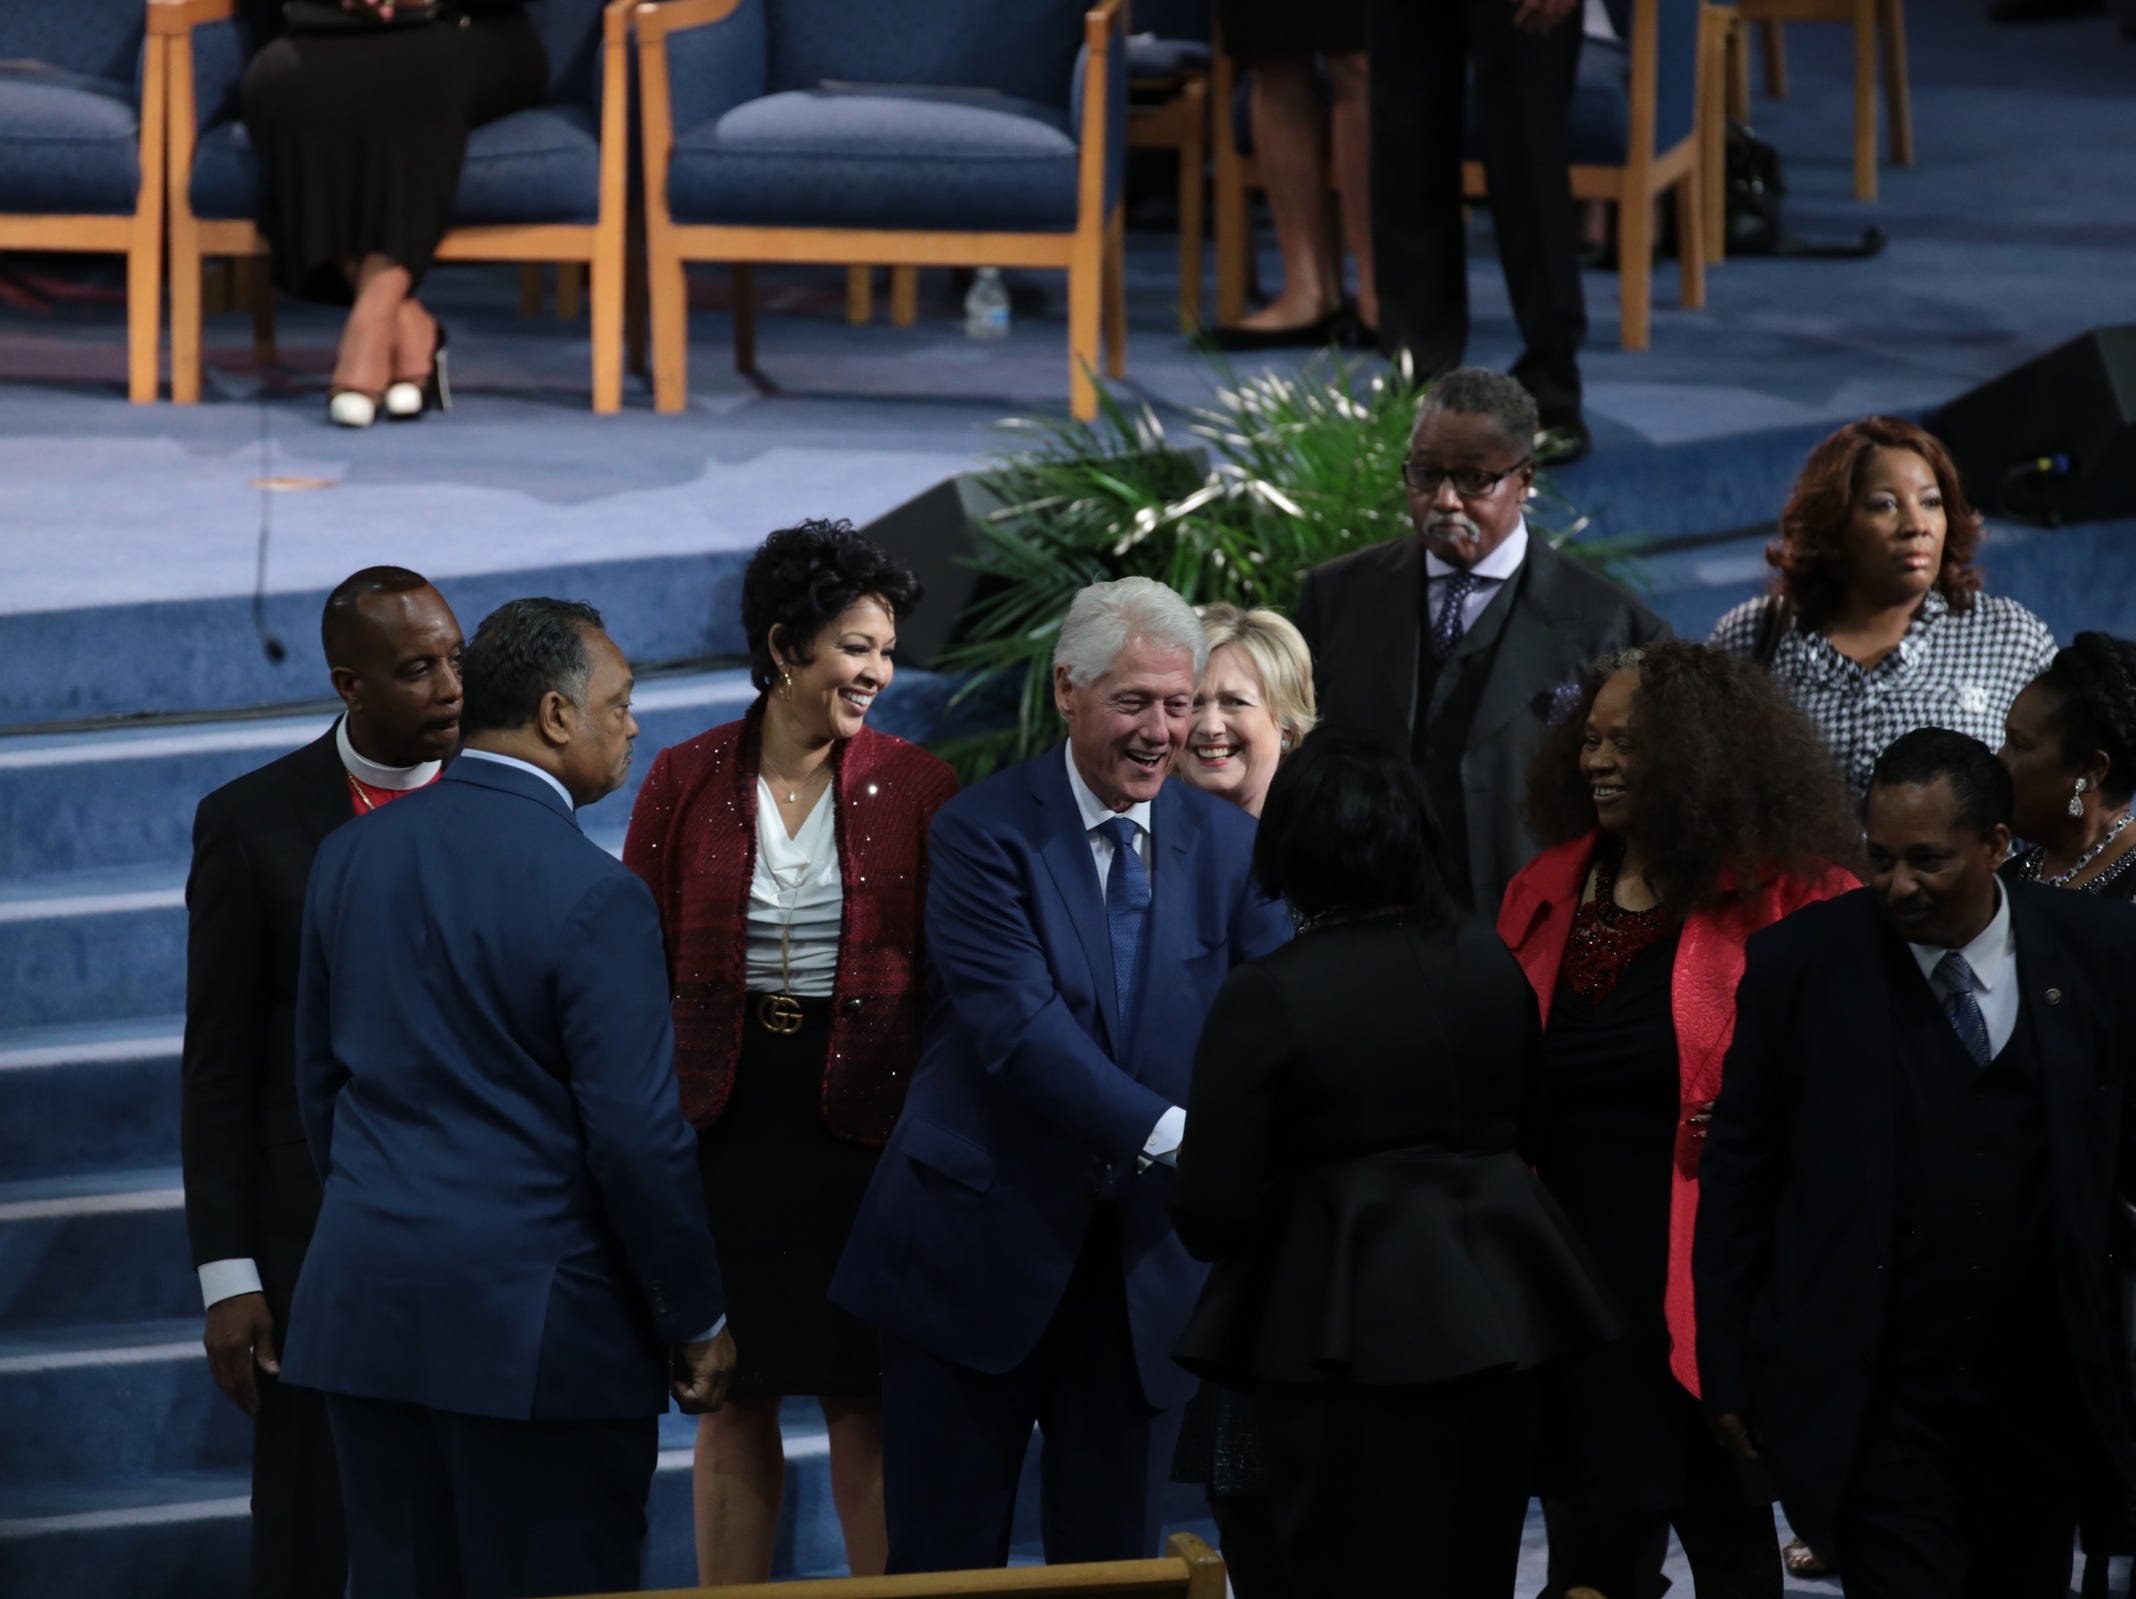 Former president Bill Clinton and Hillary Clinton greet people during the funeral for the late Aretha Franklin at Greater Grace Temple in Detroit on Friday, August 31, 2018.